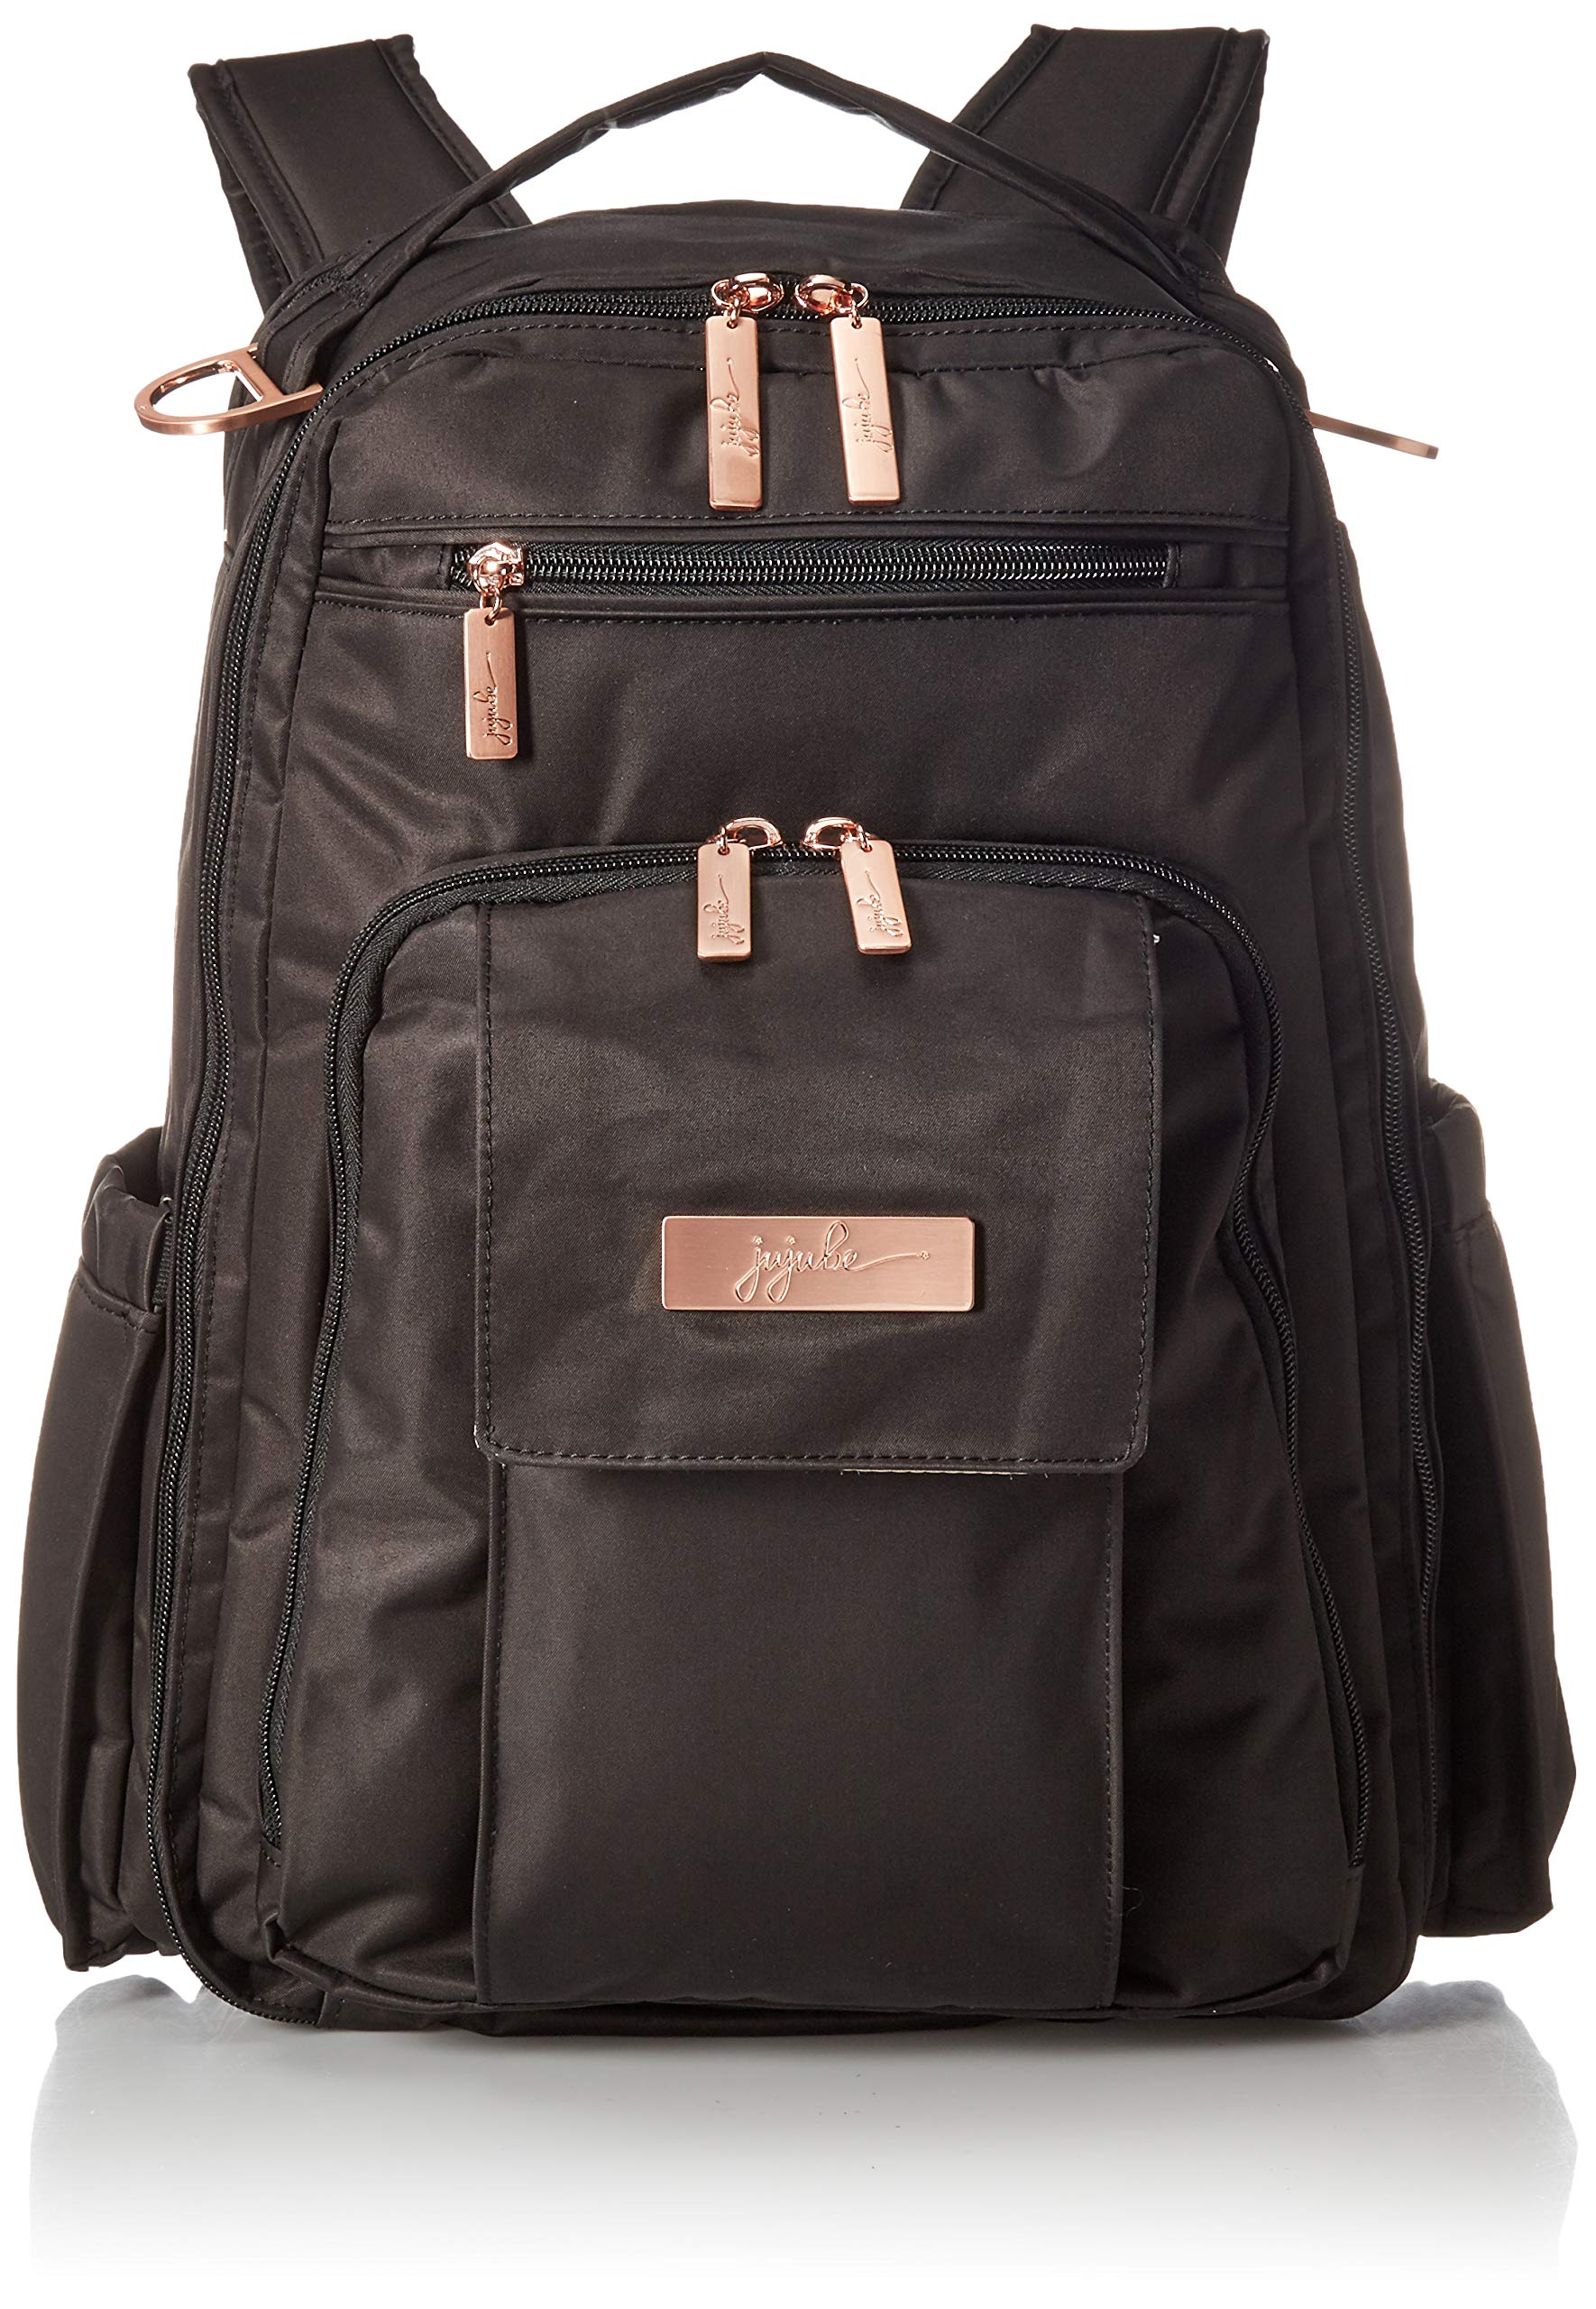 JuJuBe Be Right Back Multi-Funtional Structured Backpack/Diaper Bag Rose Collection Knight Rose